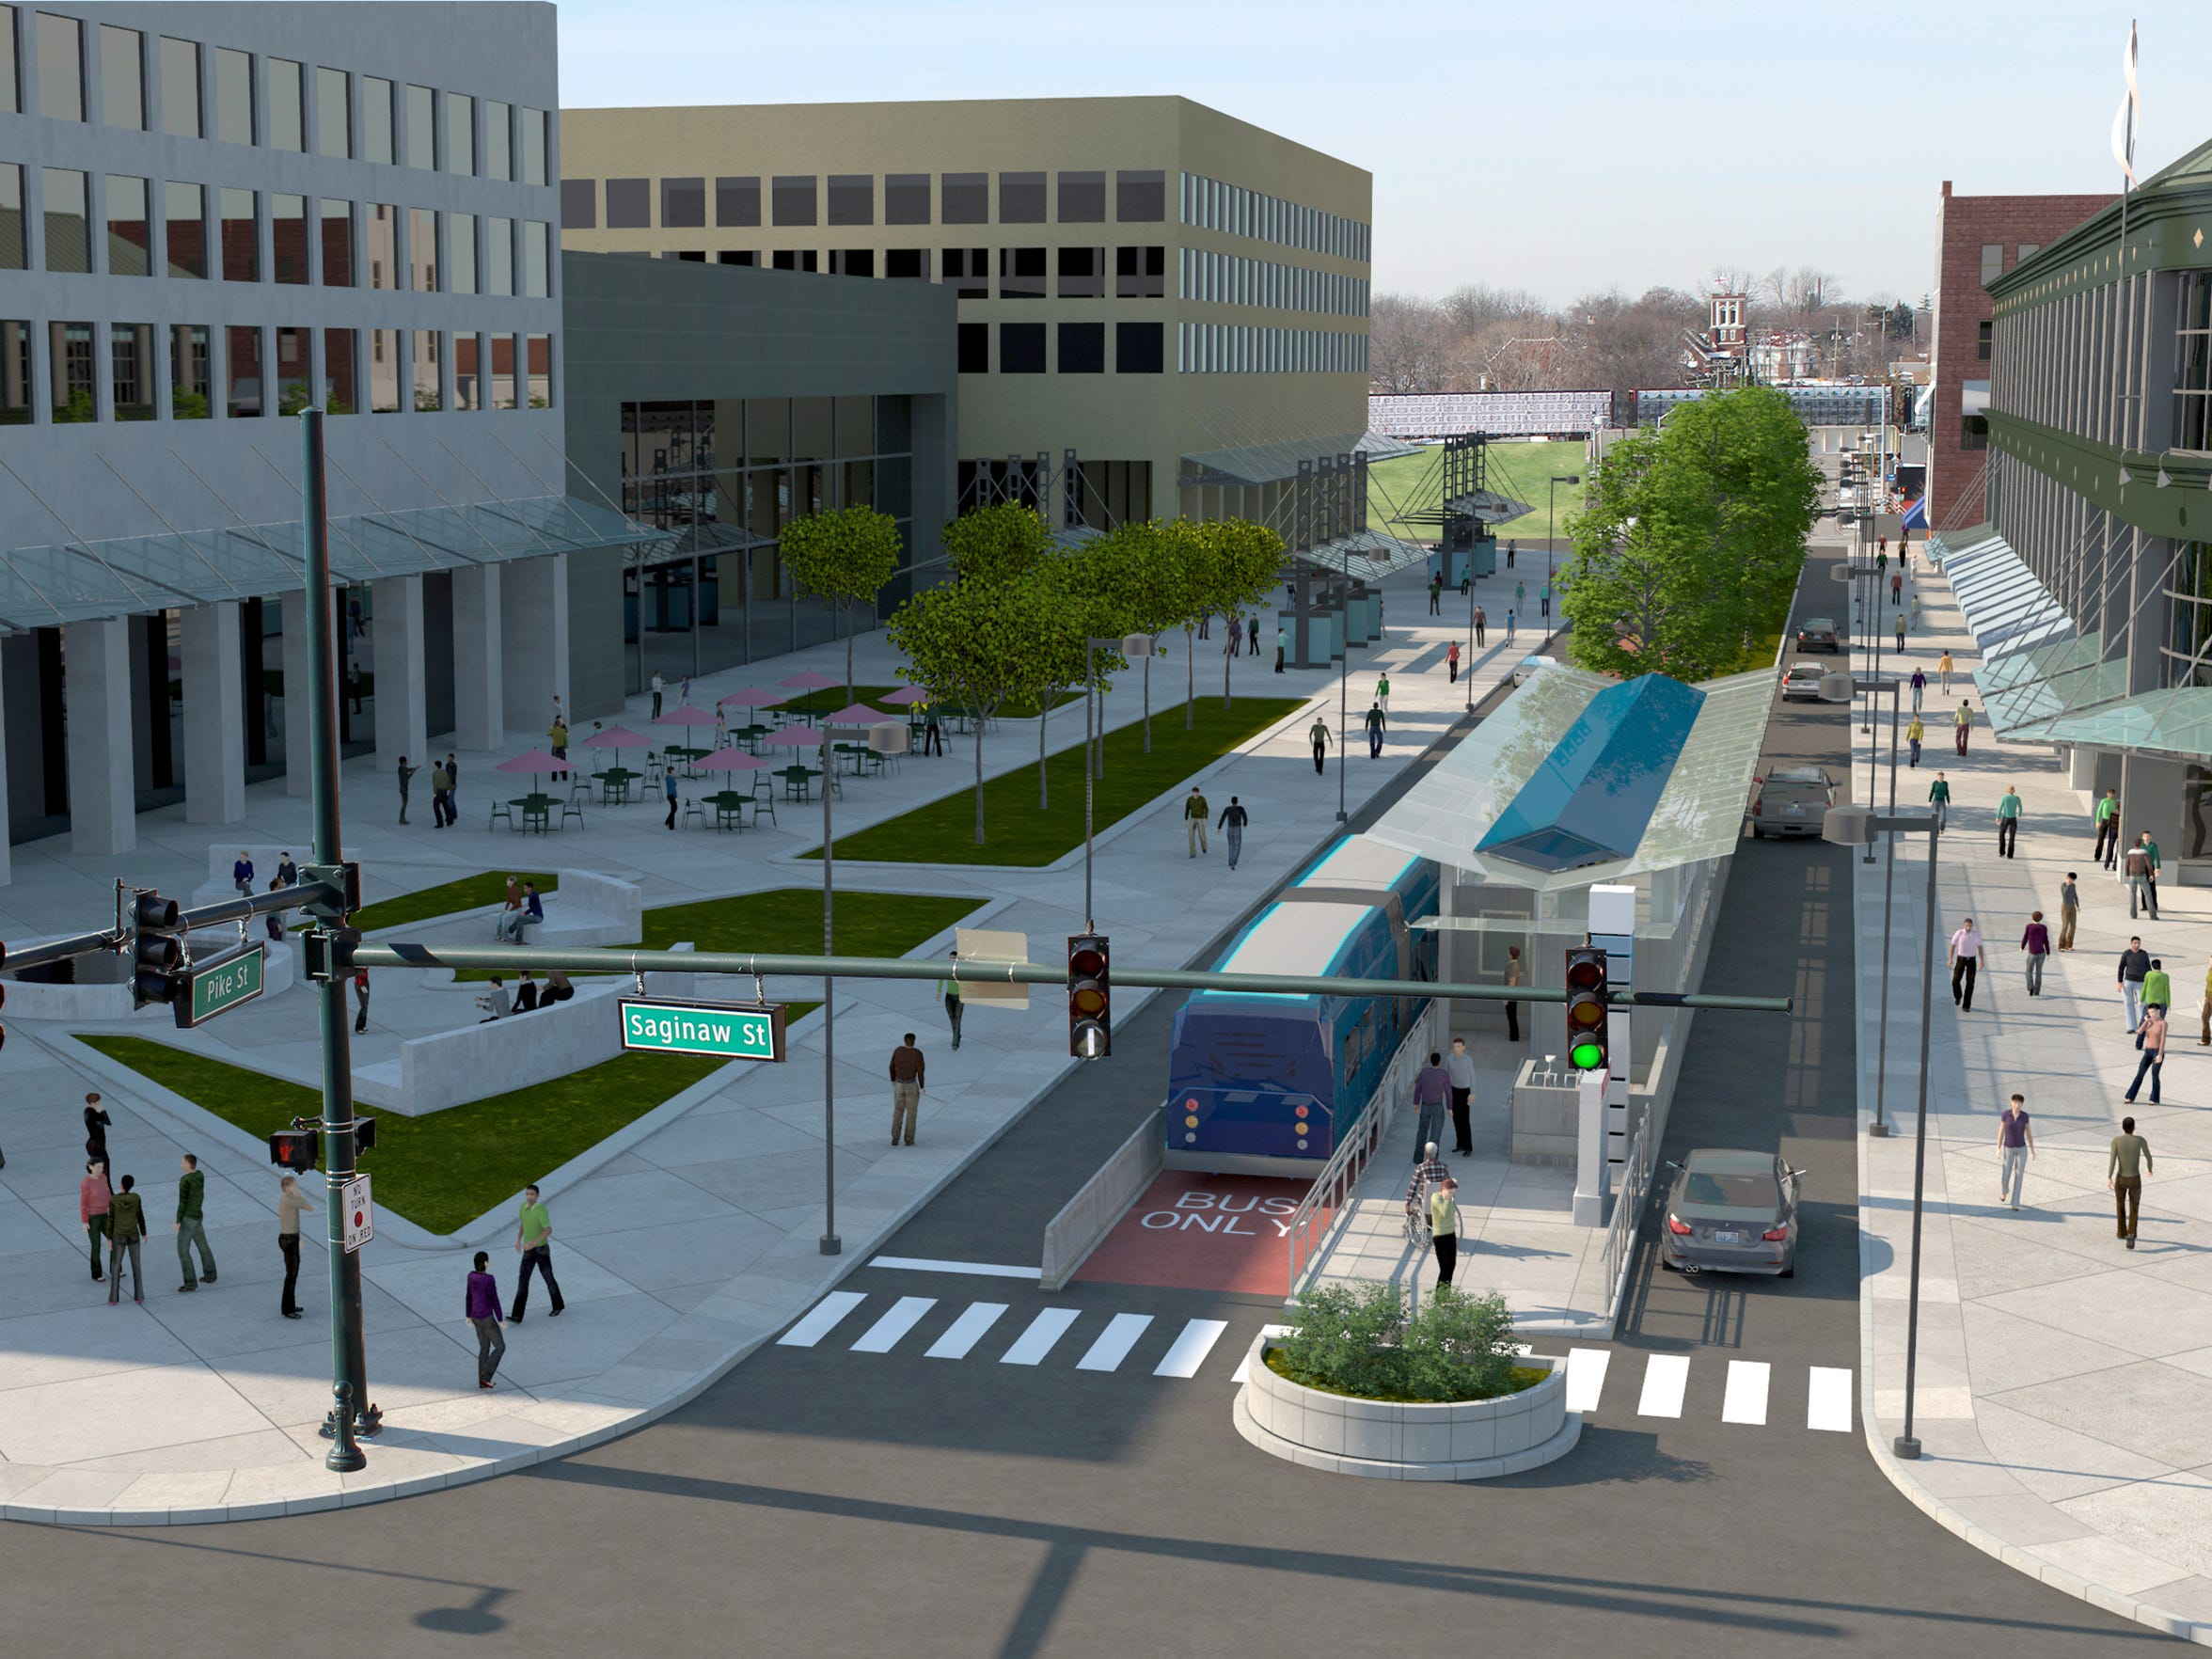 A rendering provided by the Regional Transit Authority of Southeast Michigan shows how a bus rapid transit line might appear in downtown Pontiac if the RTA master plan is approved by voters.